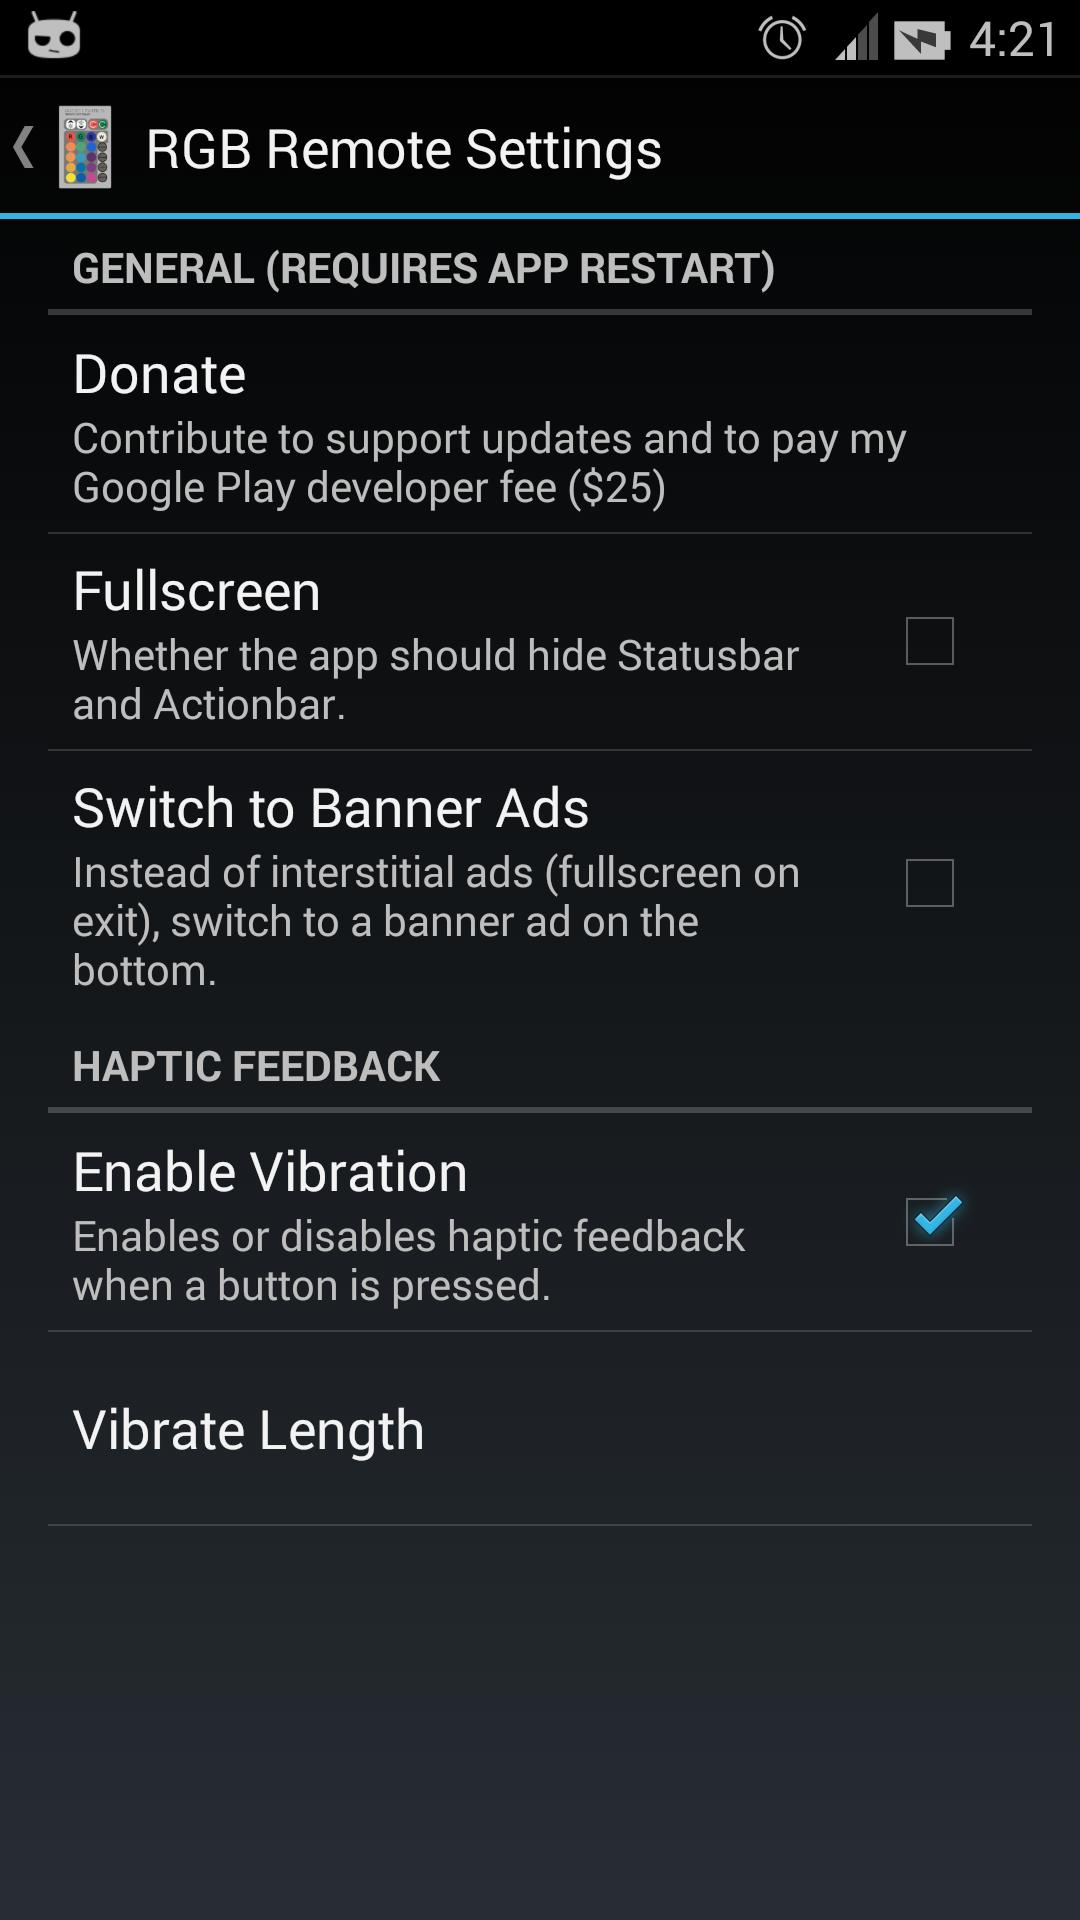 LED RGB Remote for Android - APK Download